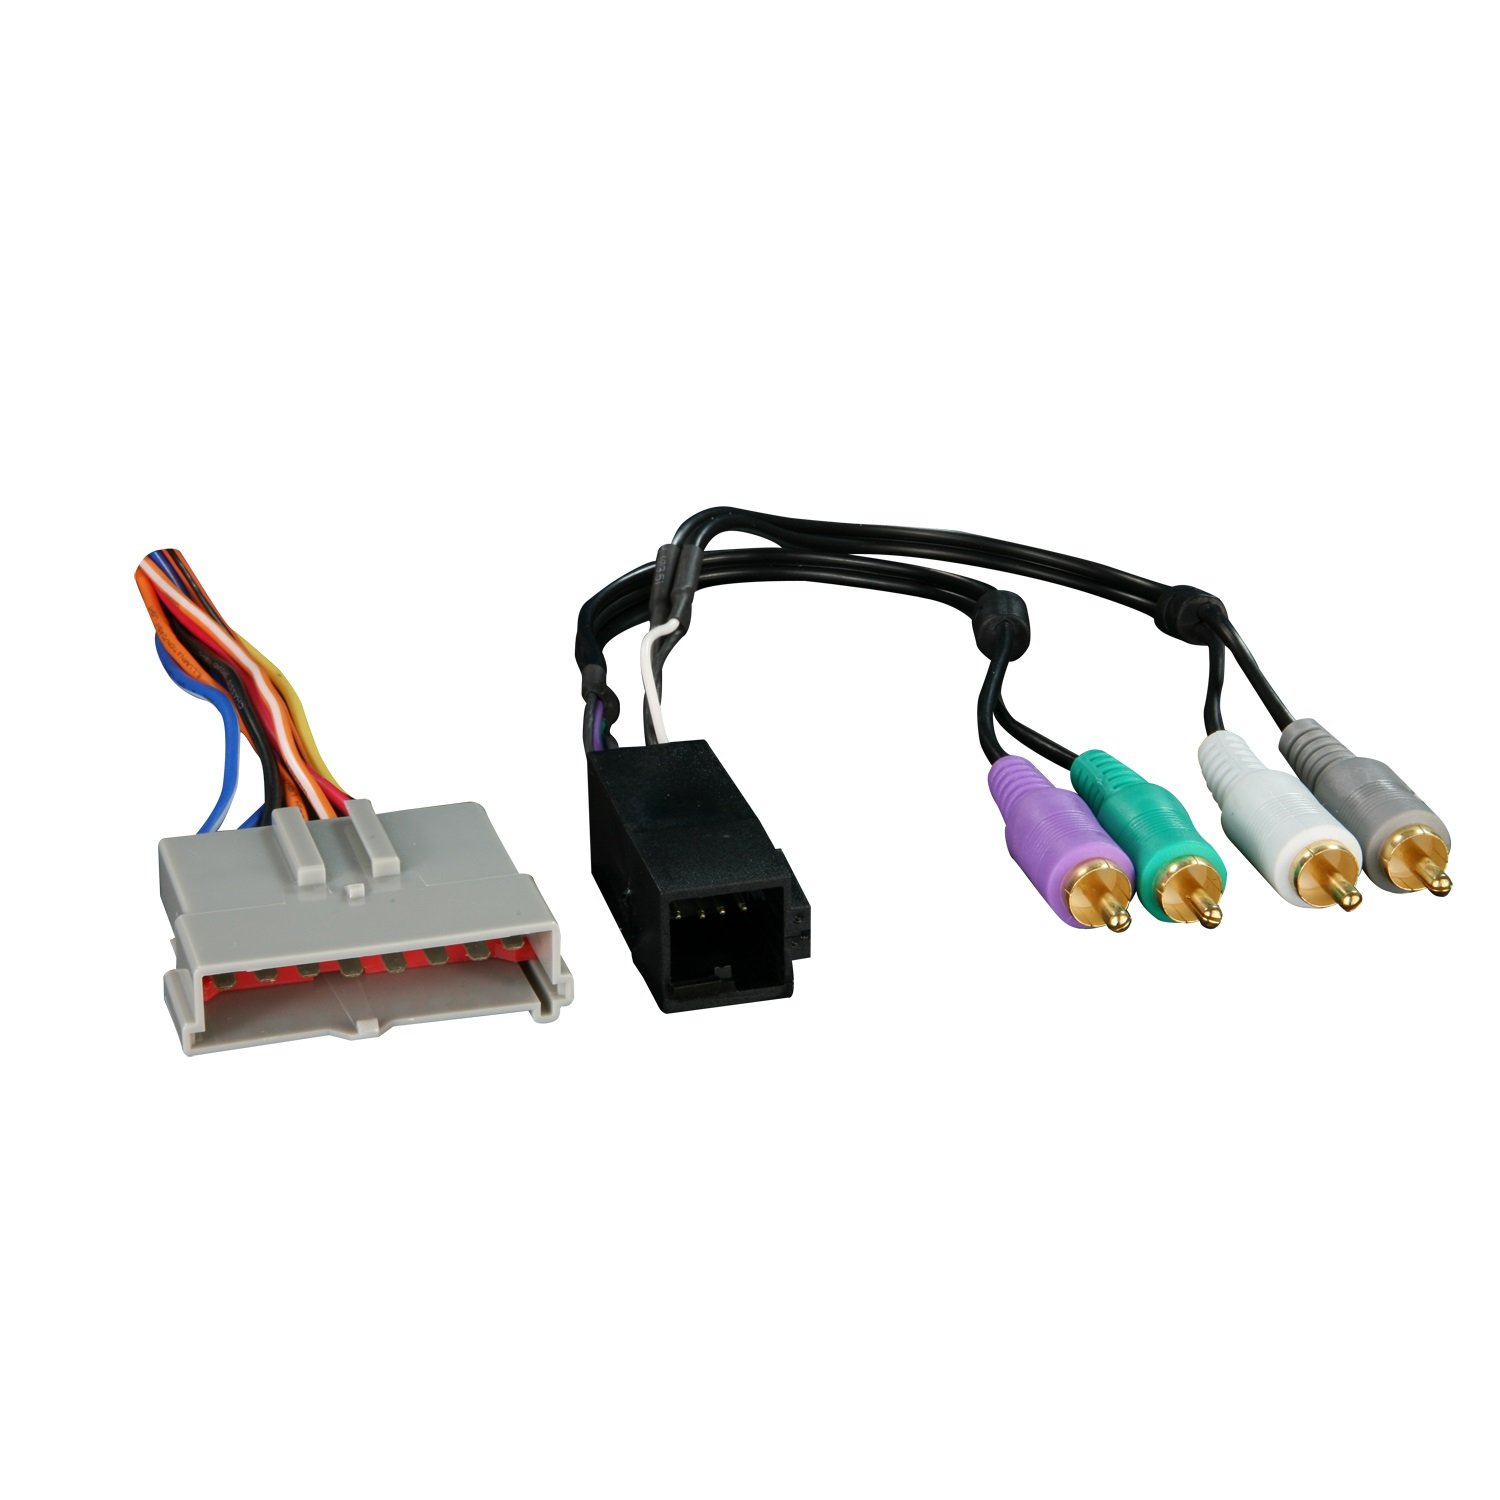 61dBSPZoitL._SL1500_ amazon com metra 70 5510 factory amplifier integration harness ford integration wire harness at alyssarenee.co